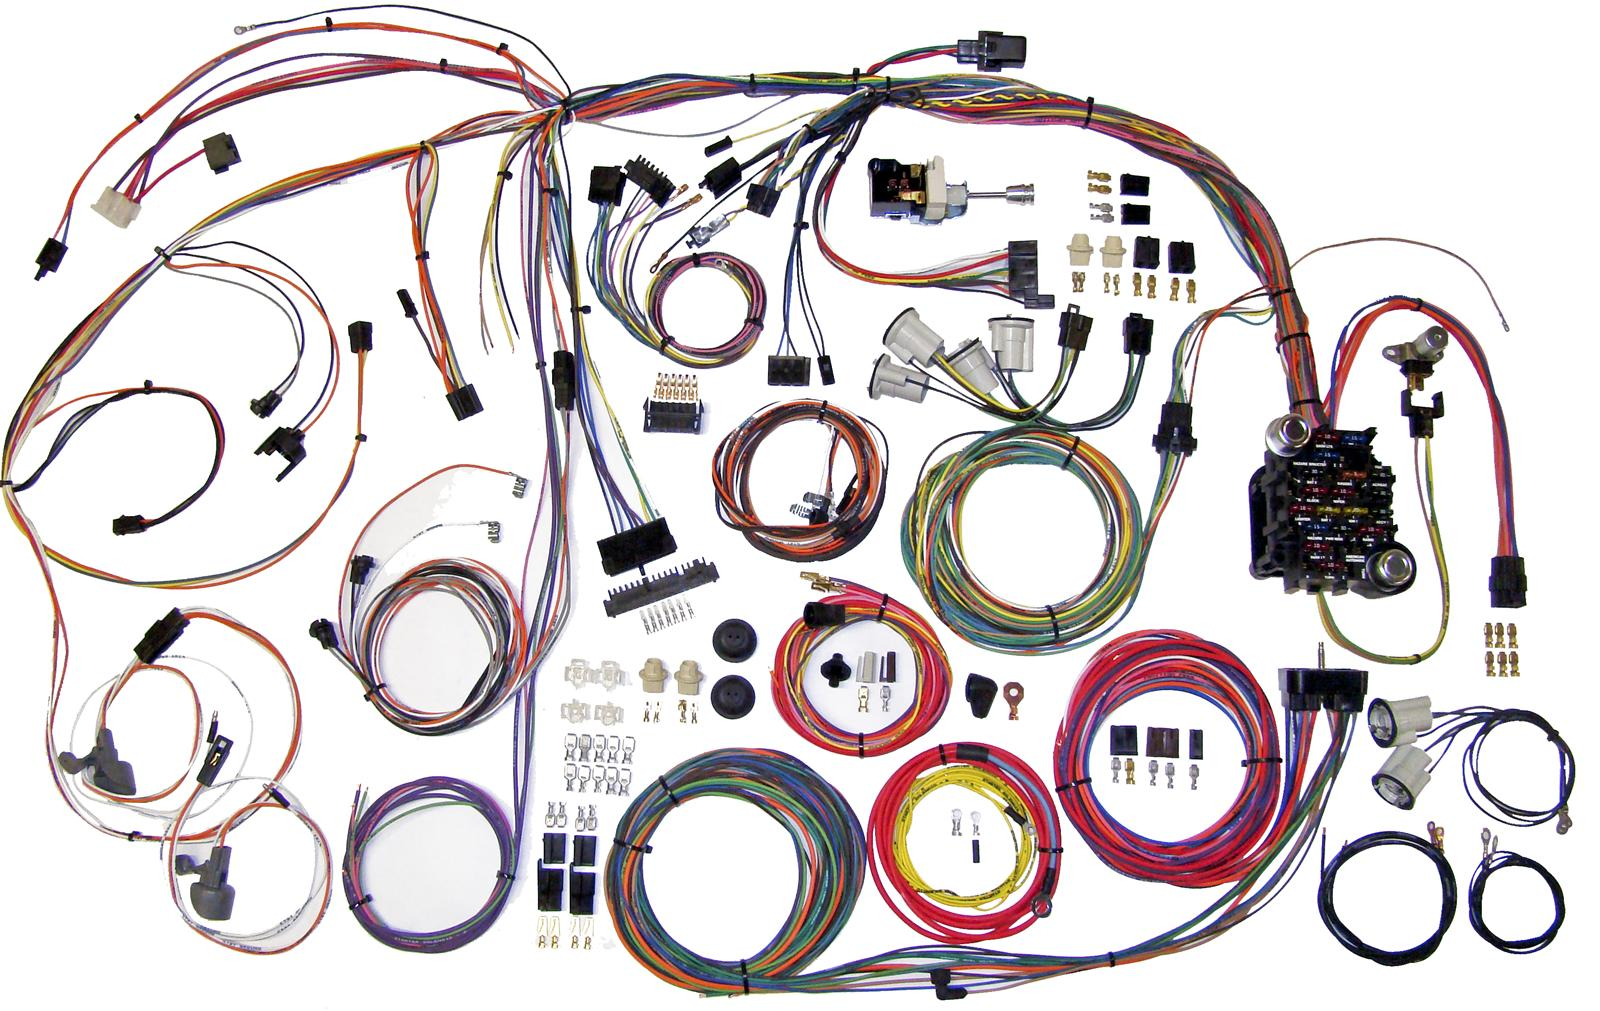 hight resolution of american autowire classic update series wiring harness kits 510105 free shipping on orders over 99 at summit racing